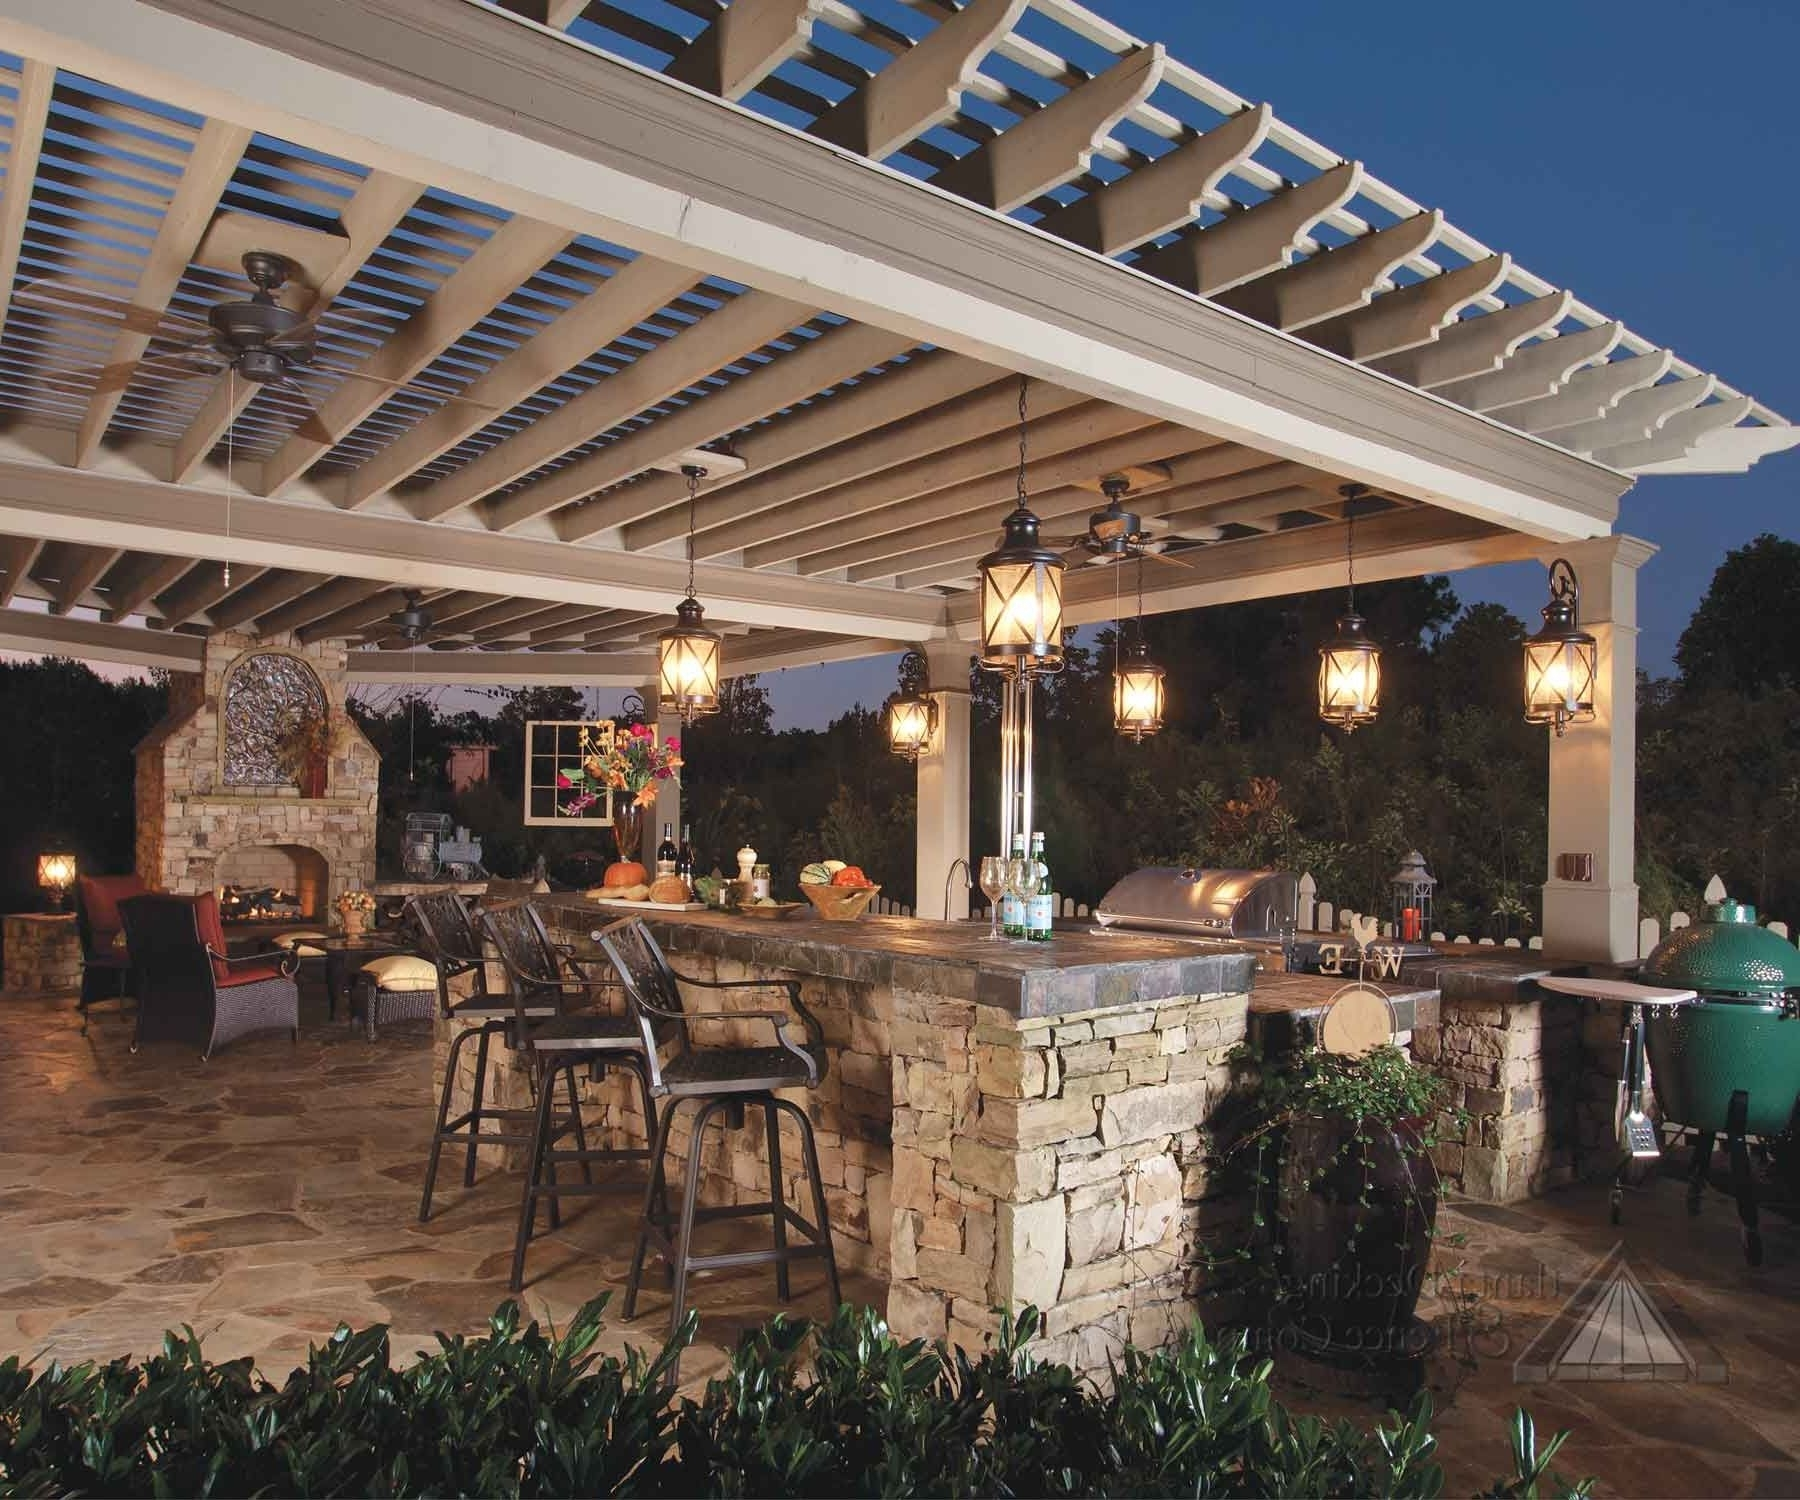 Ideas And Tips On How To Hang Patio Lights Diy Of Outdoor Pation Regarding Outdoor Hanging Patio Lanterns (View 4 of 15)